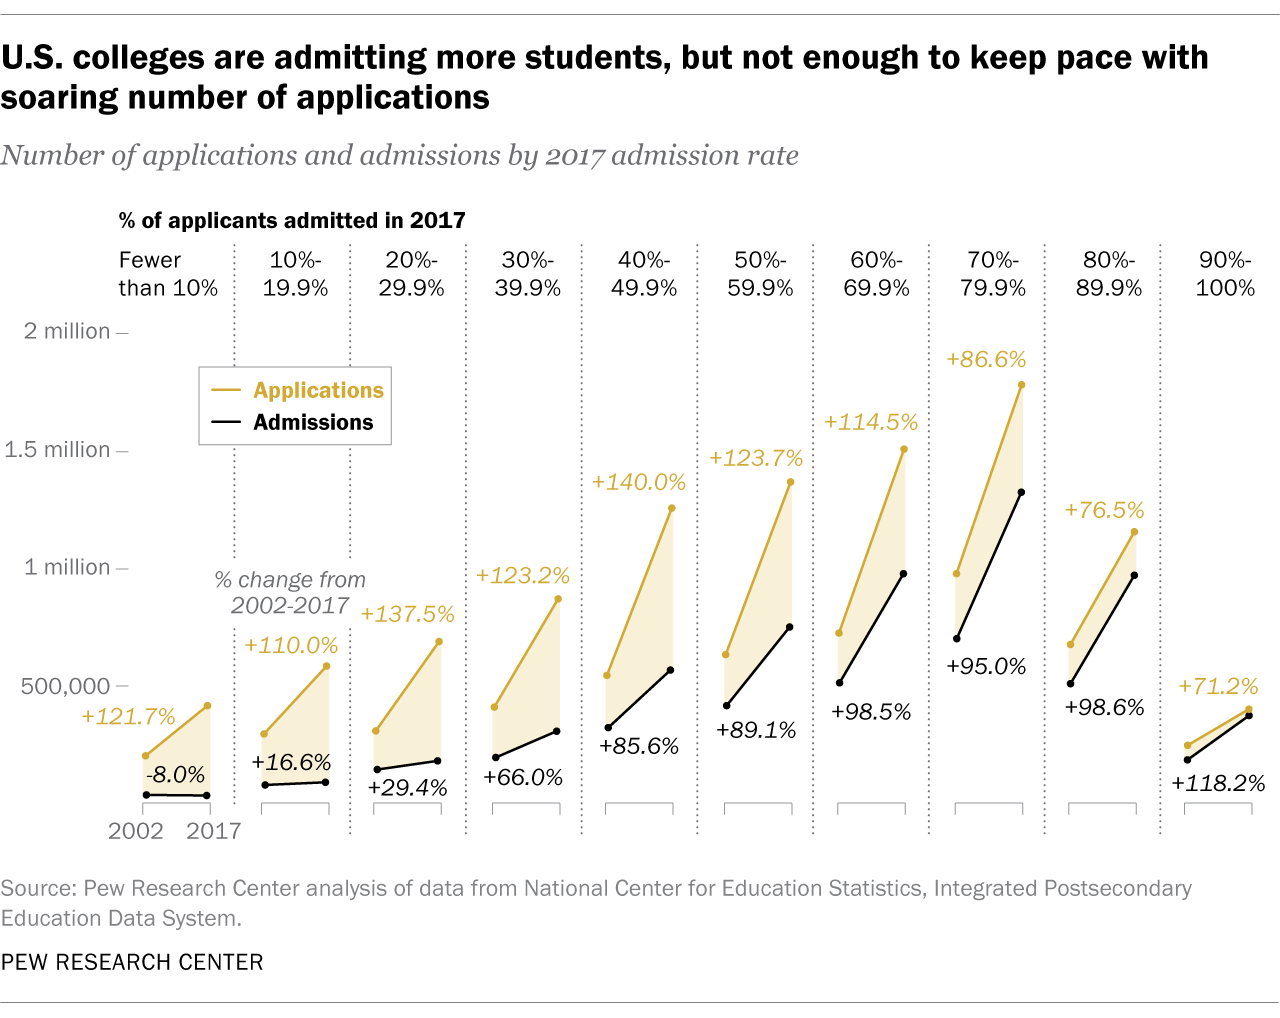 U.S. colleges are admitting more students, but not enough to keep pace with soaring number of applications